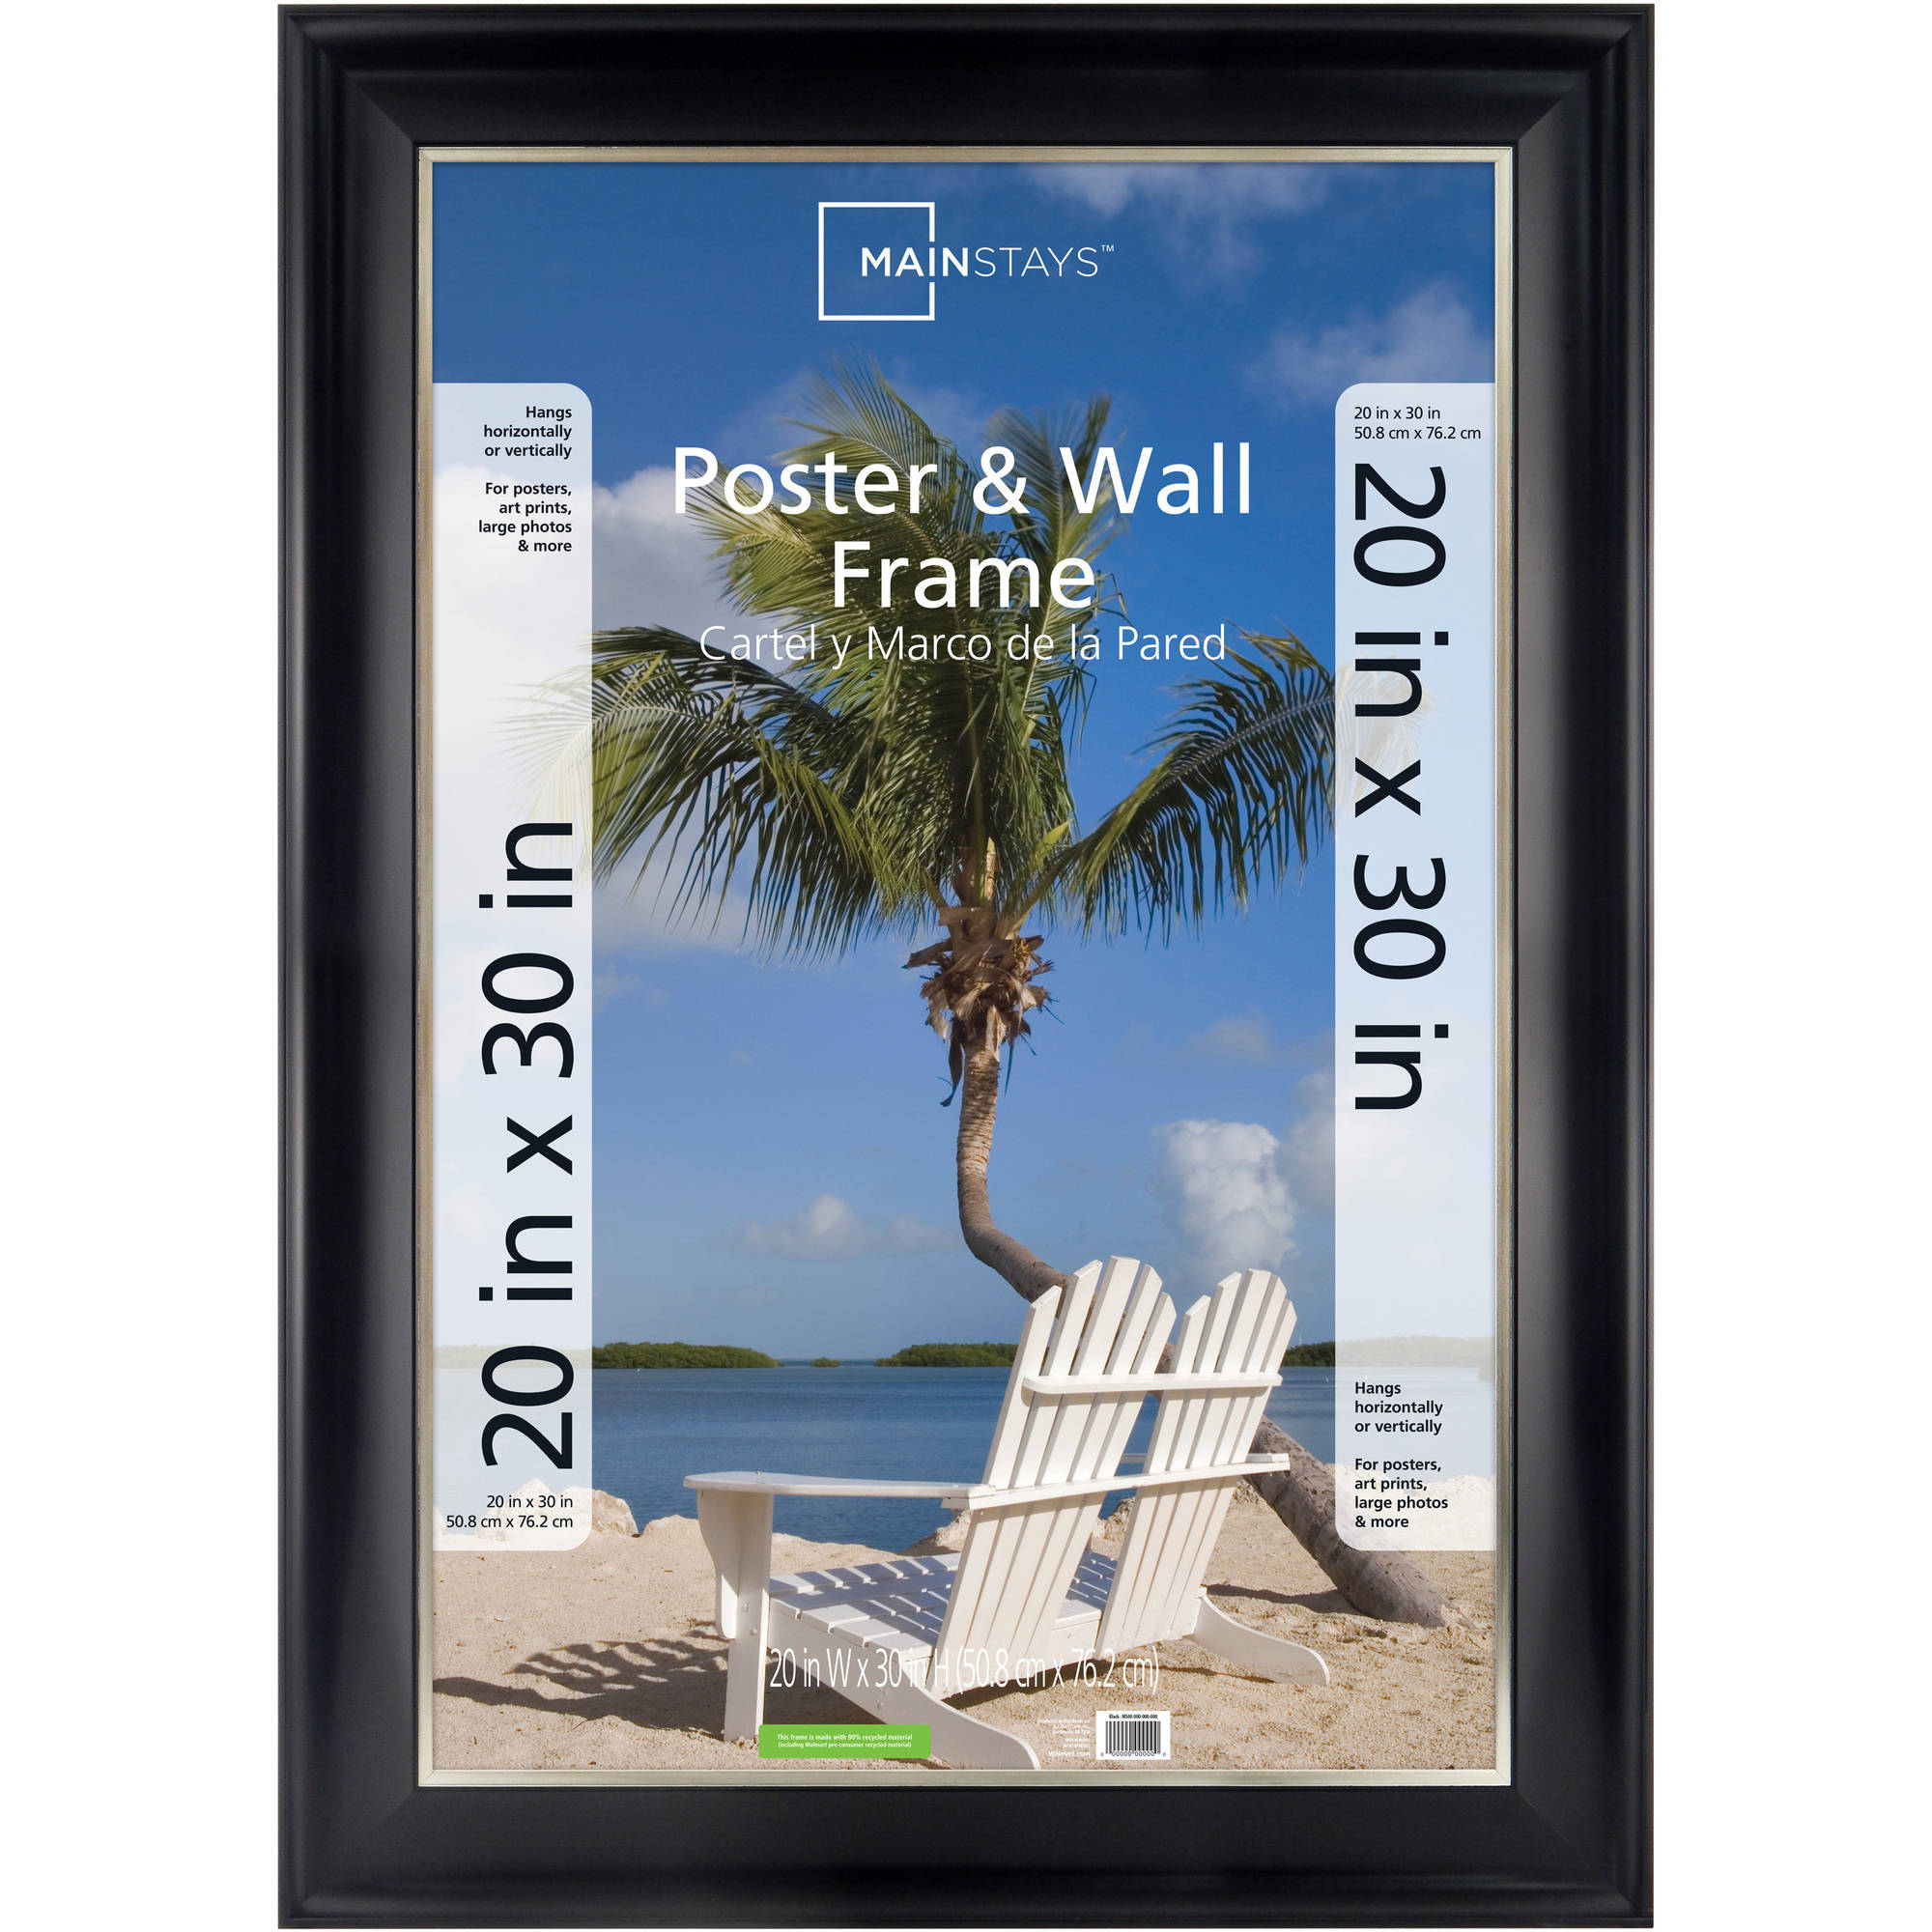 Mainstays 20 X 30 Two Tone Poster Frame Black With Champagne